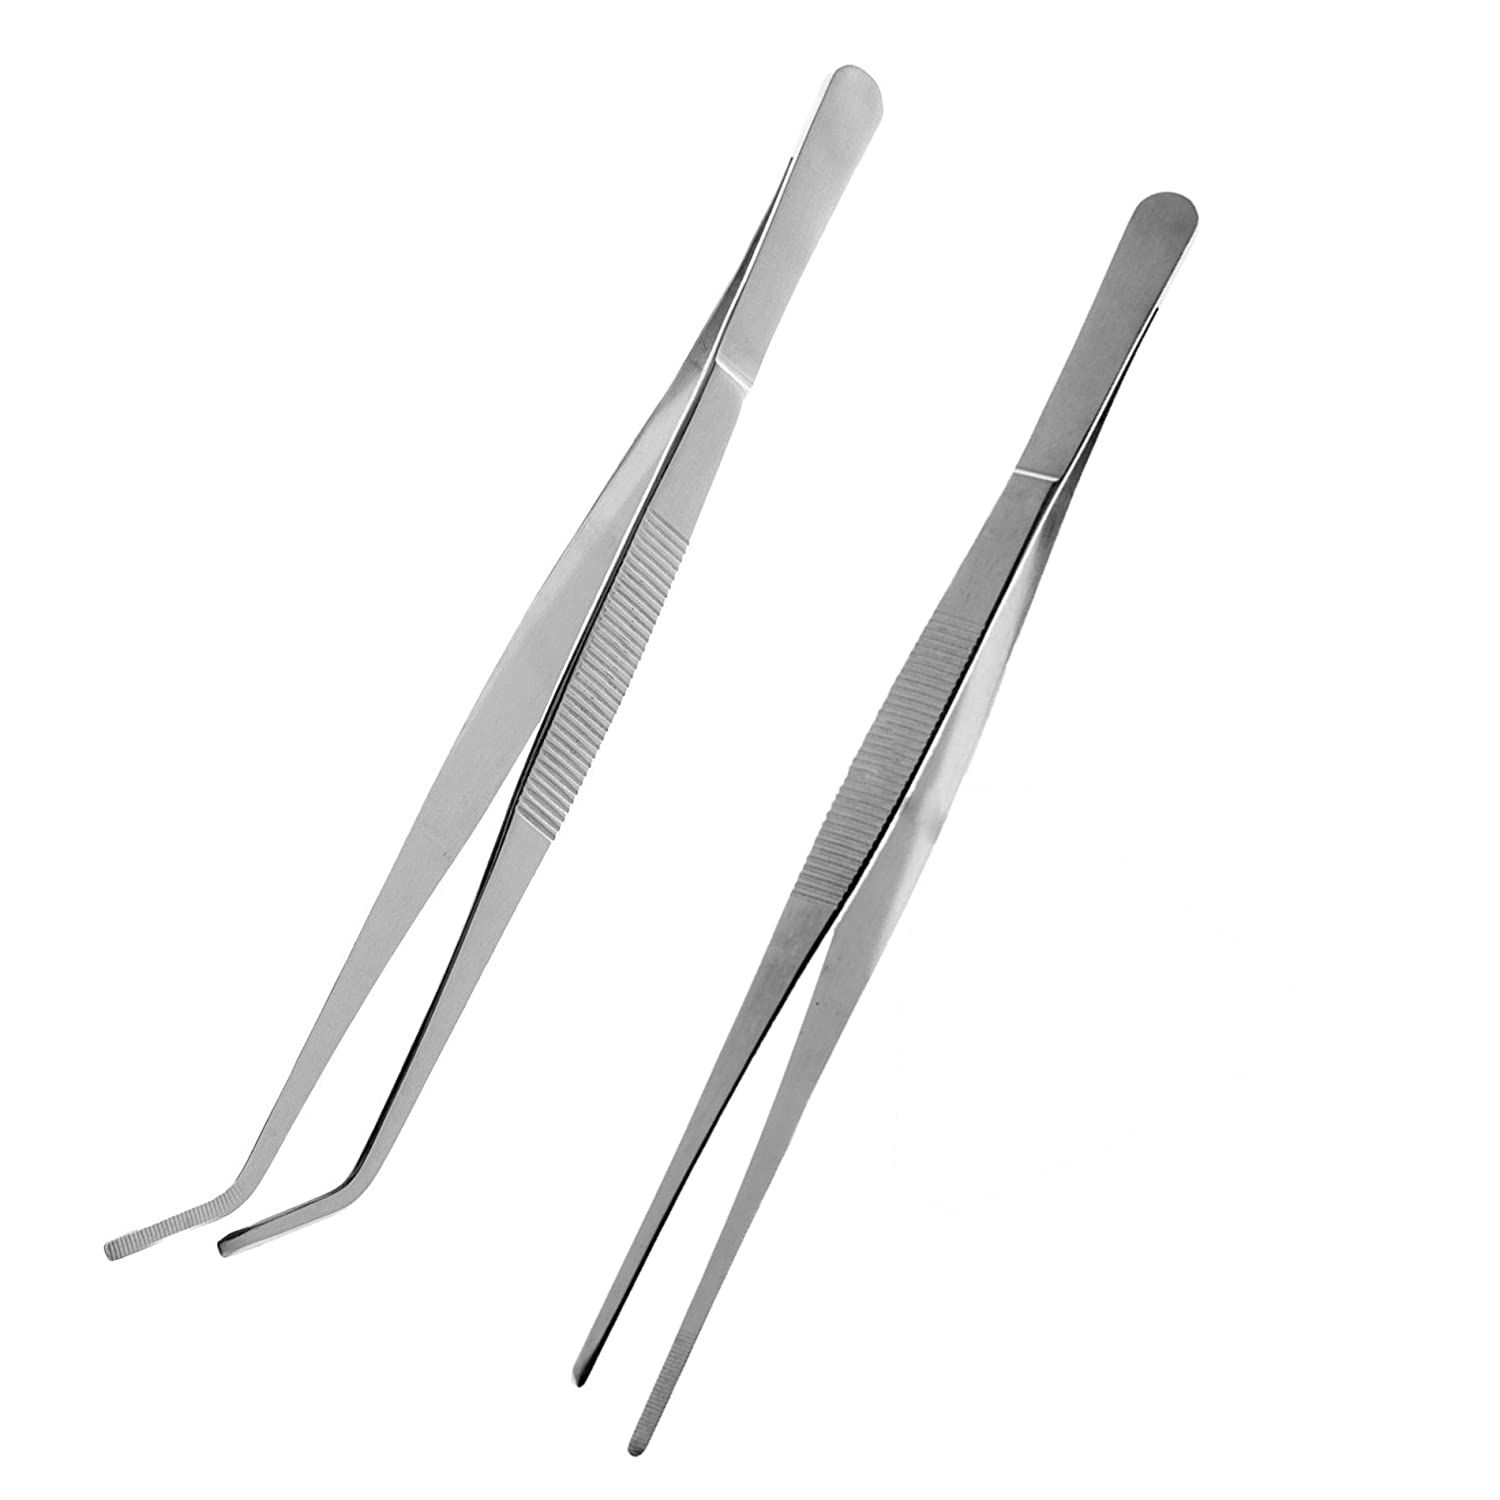 10 (25cm) Stainless Steel Straight Feeding Tongs Tweezers for Reptile Nipper IDS Home